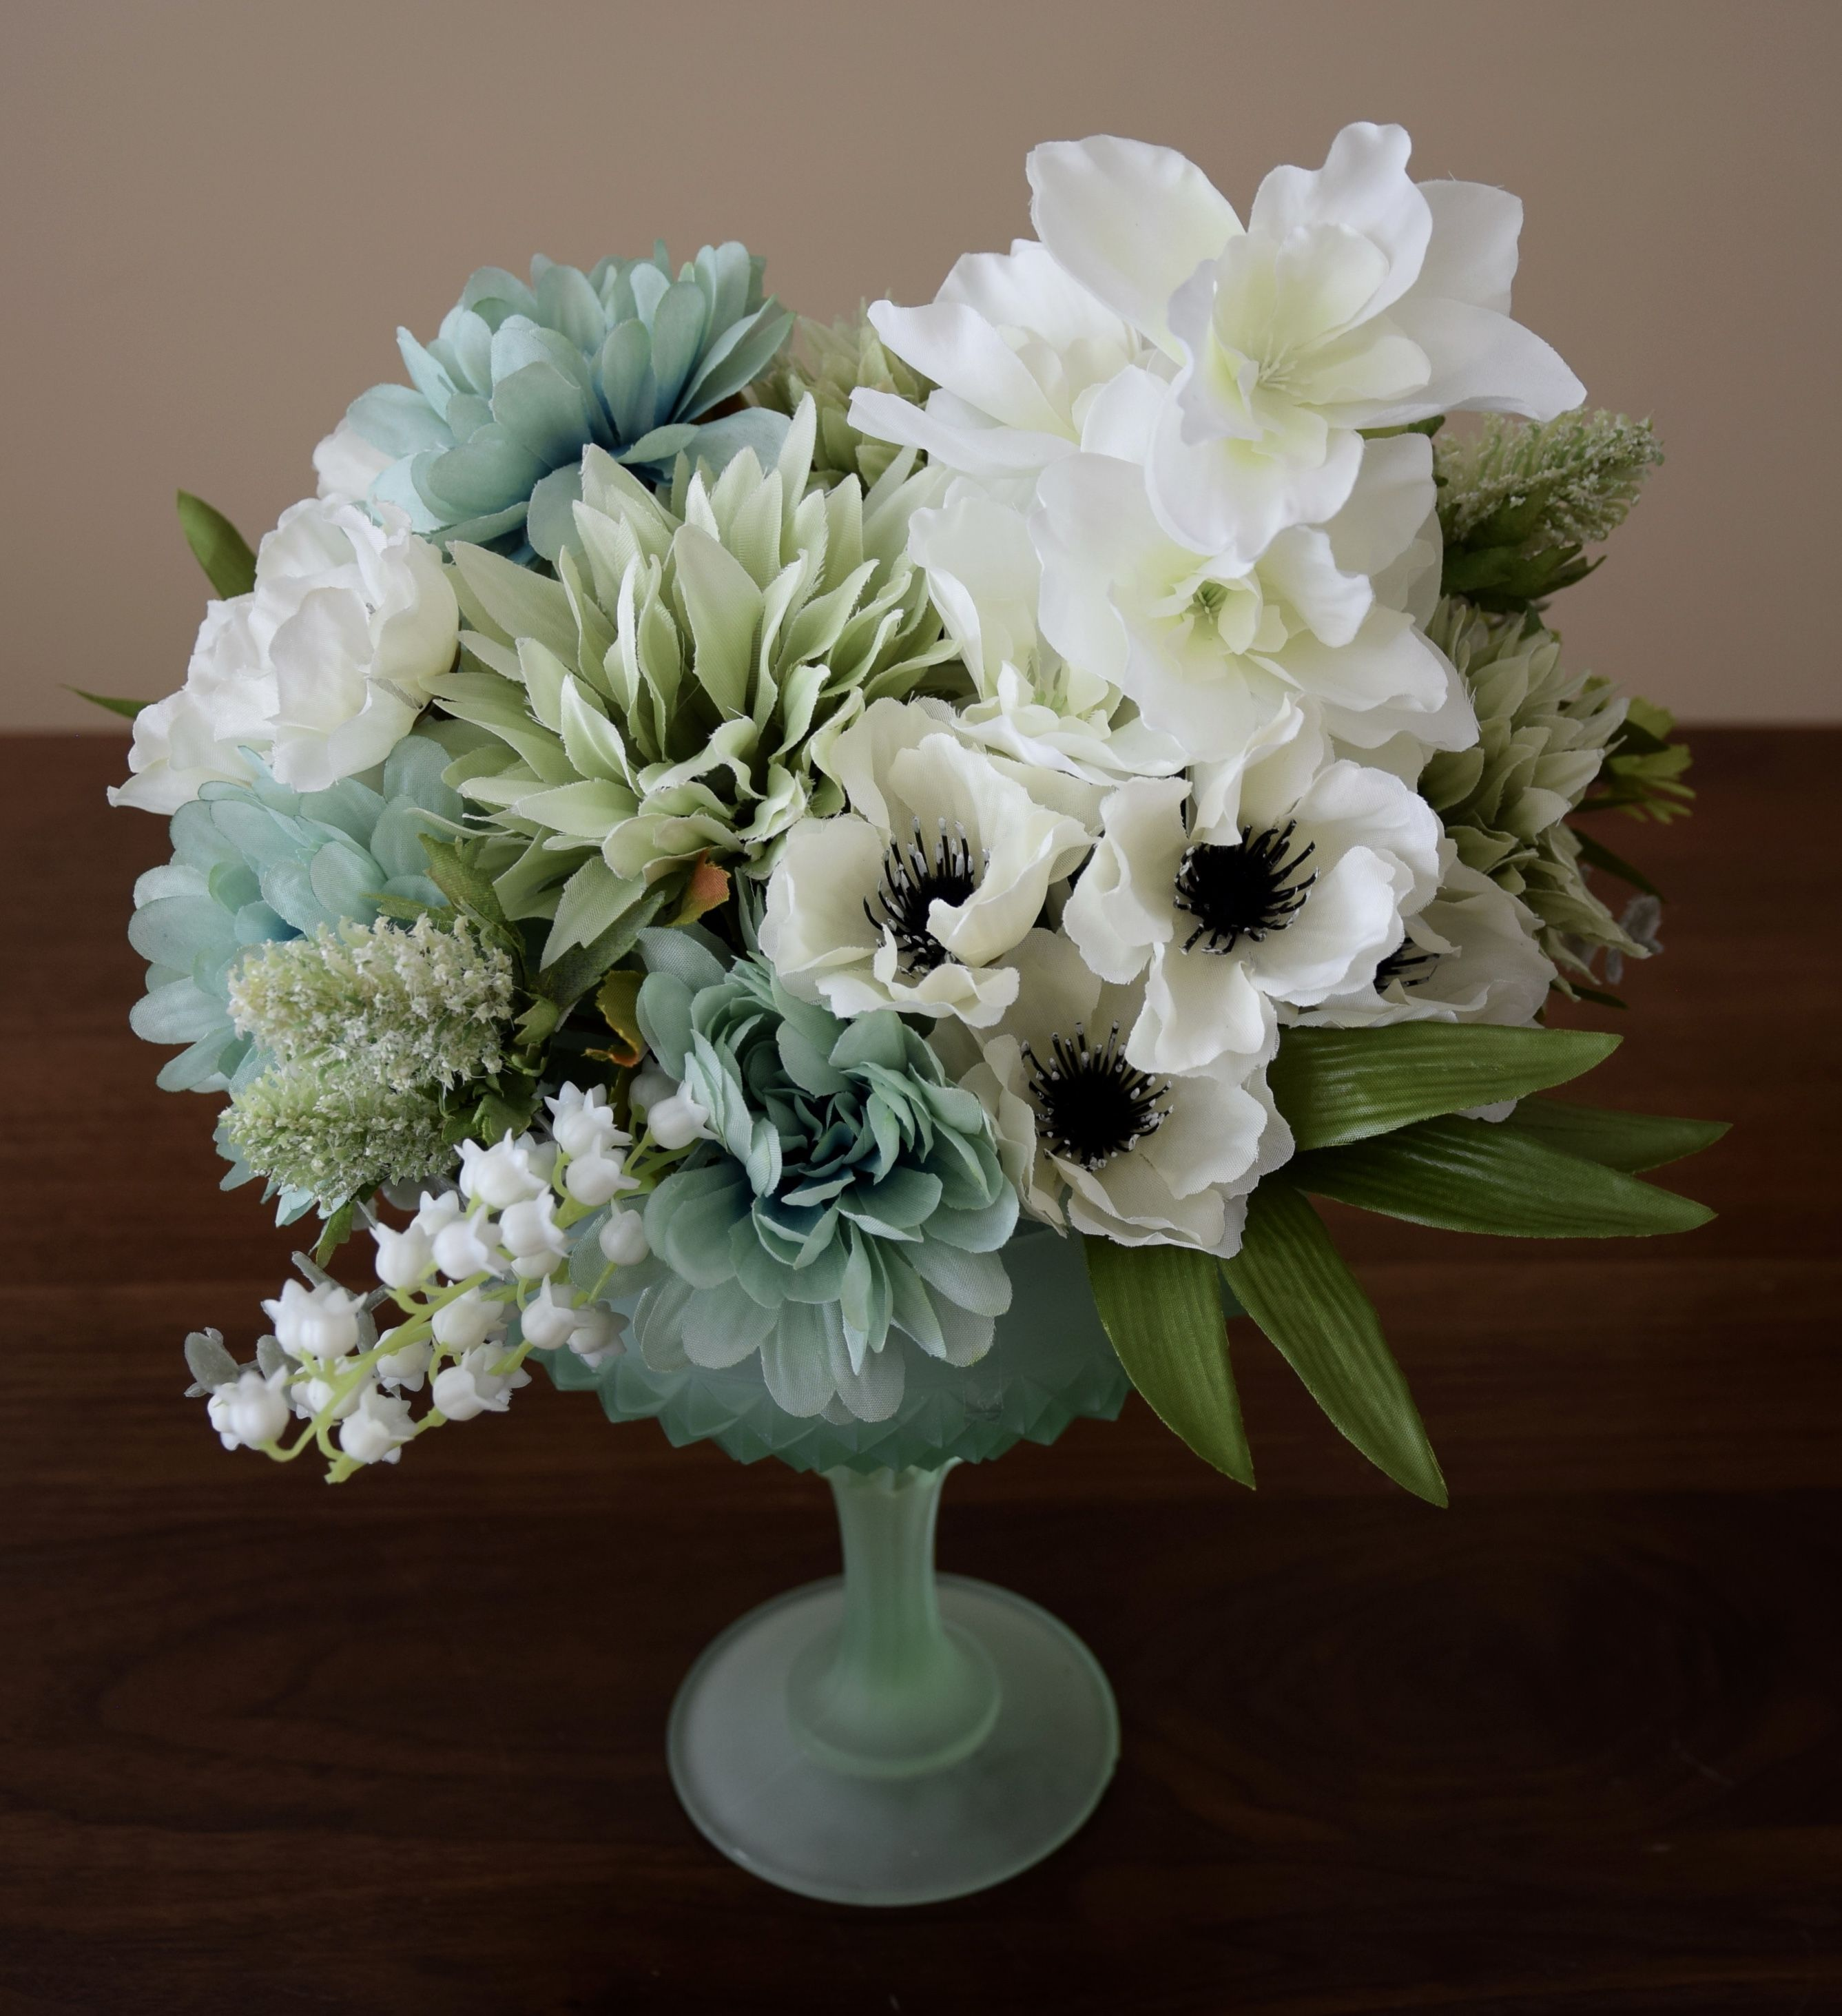 Flower Arrangement Create With High Quality Silk Flowers White And